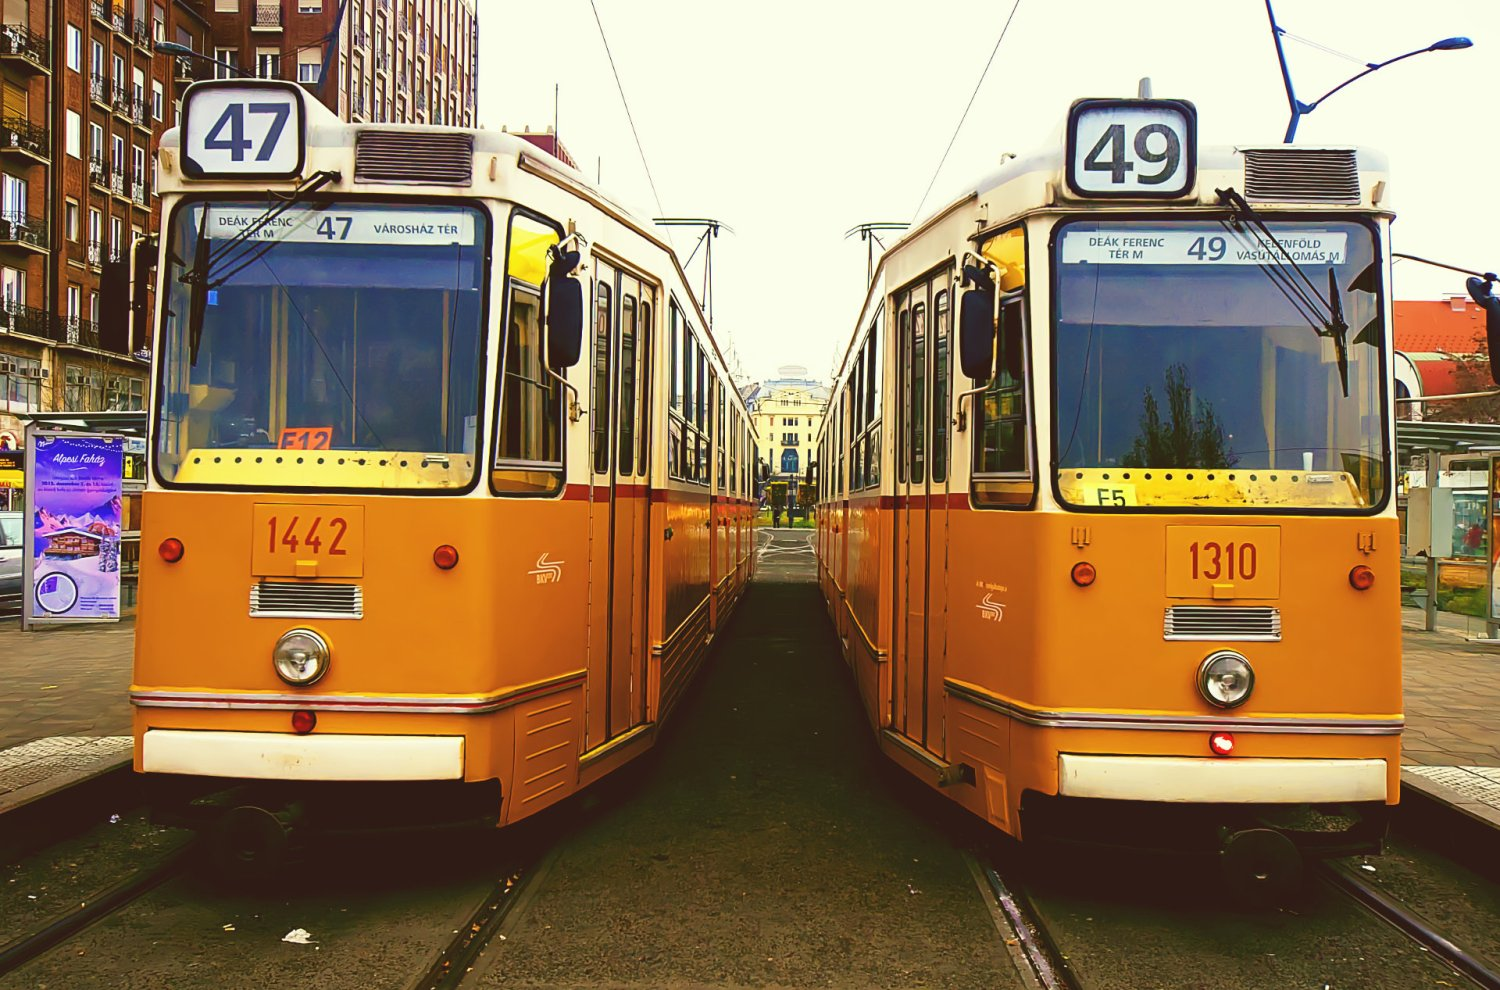 Two Ganz Trams waiting at a station in Budapest